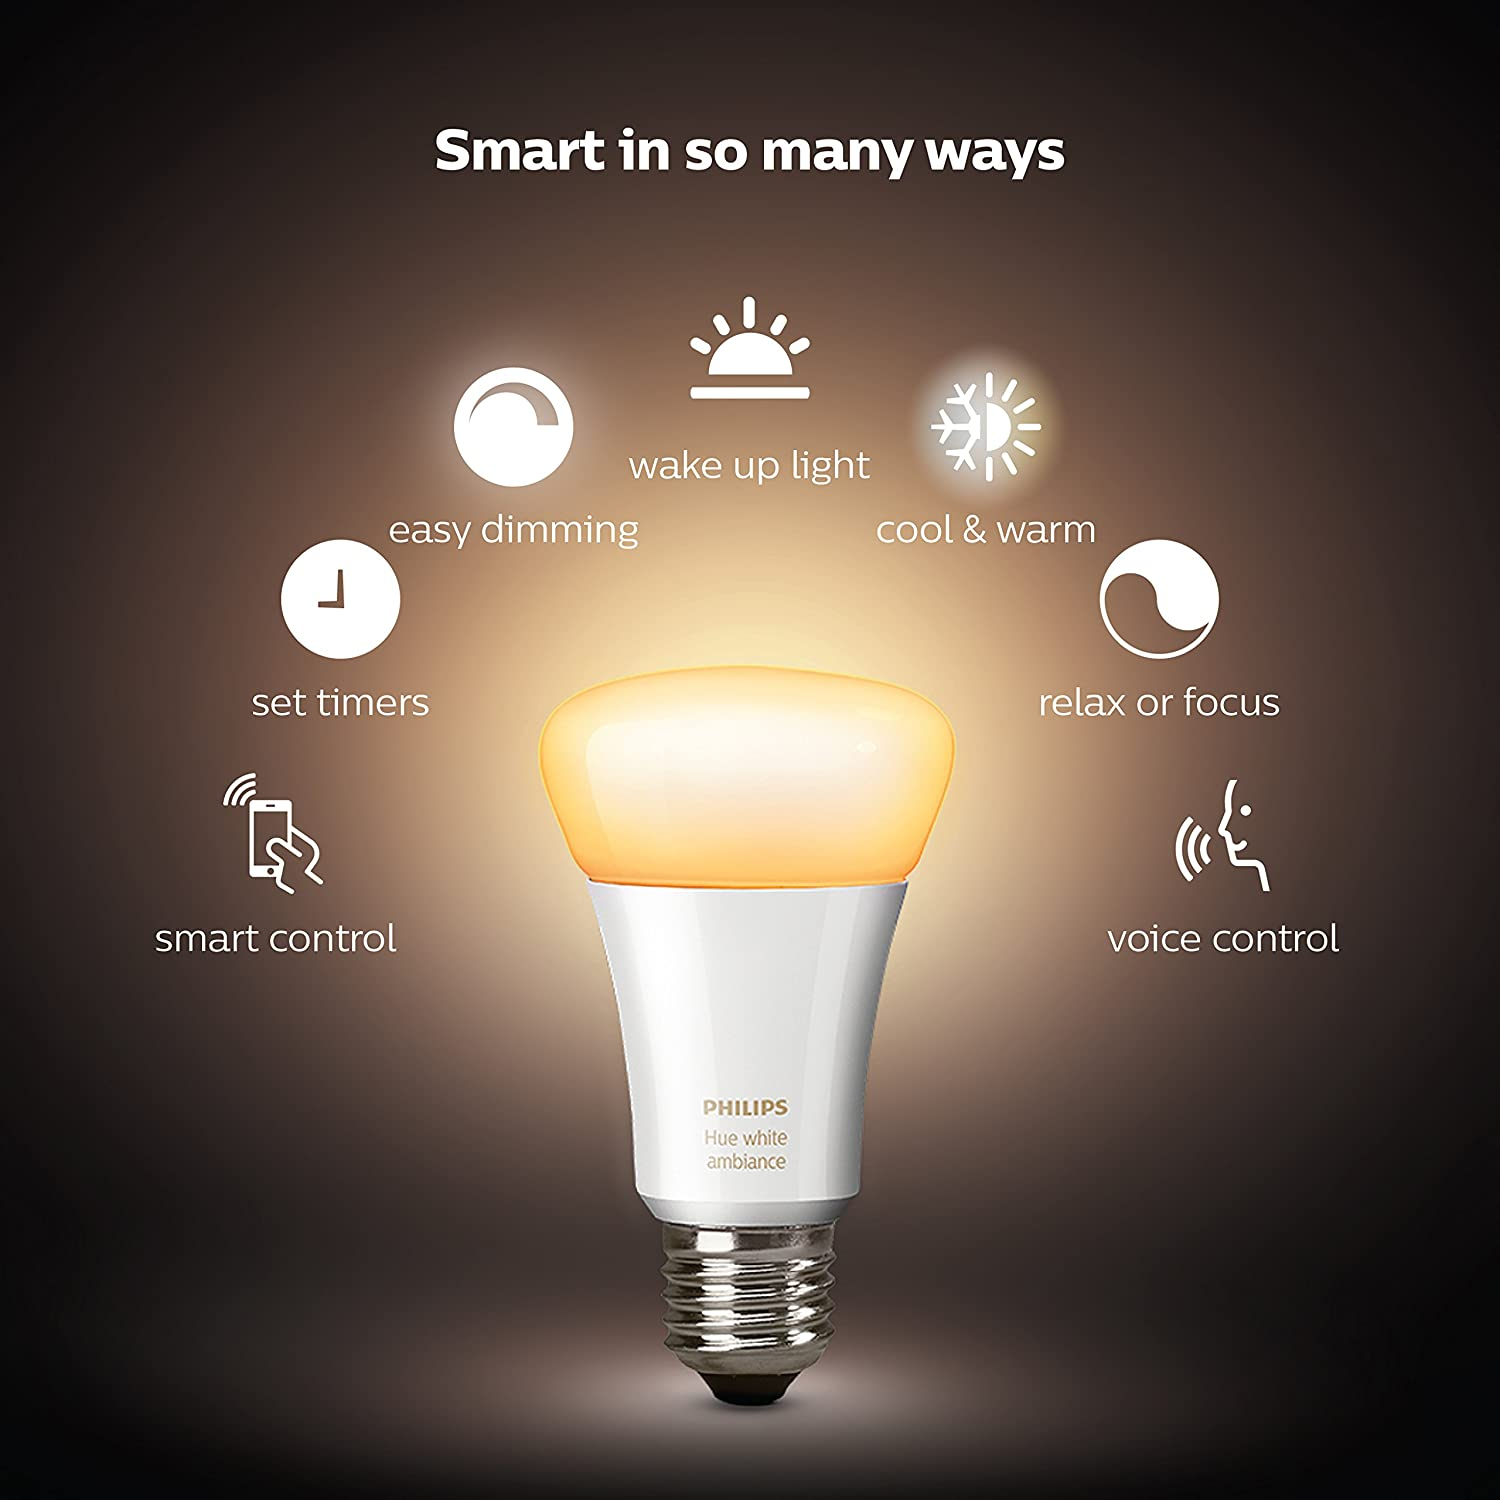 Philips Hue White Ambiance Smart Bulb Starter Kit 4 A19 Bulbs and 1 Hub Works with Alexa Apple HomeKit and Google Assistant